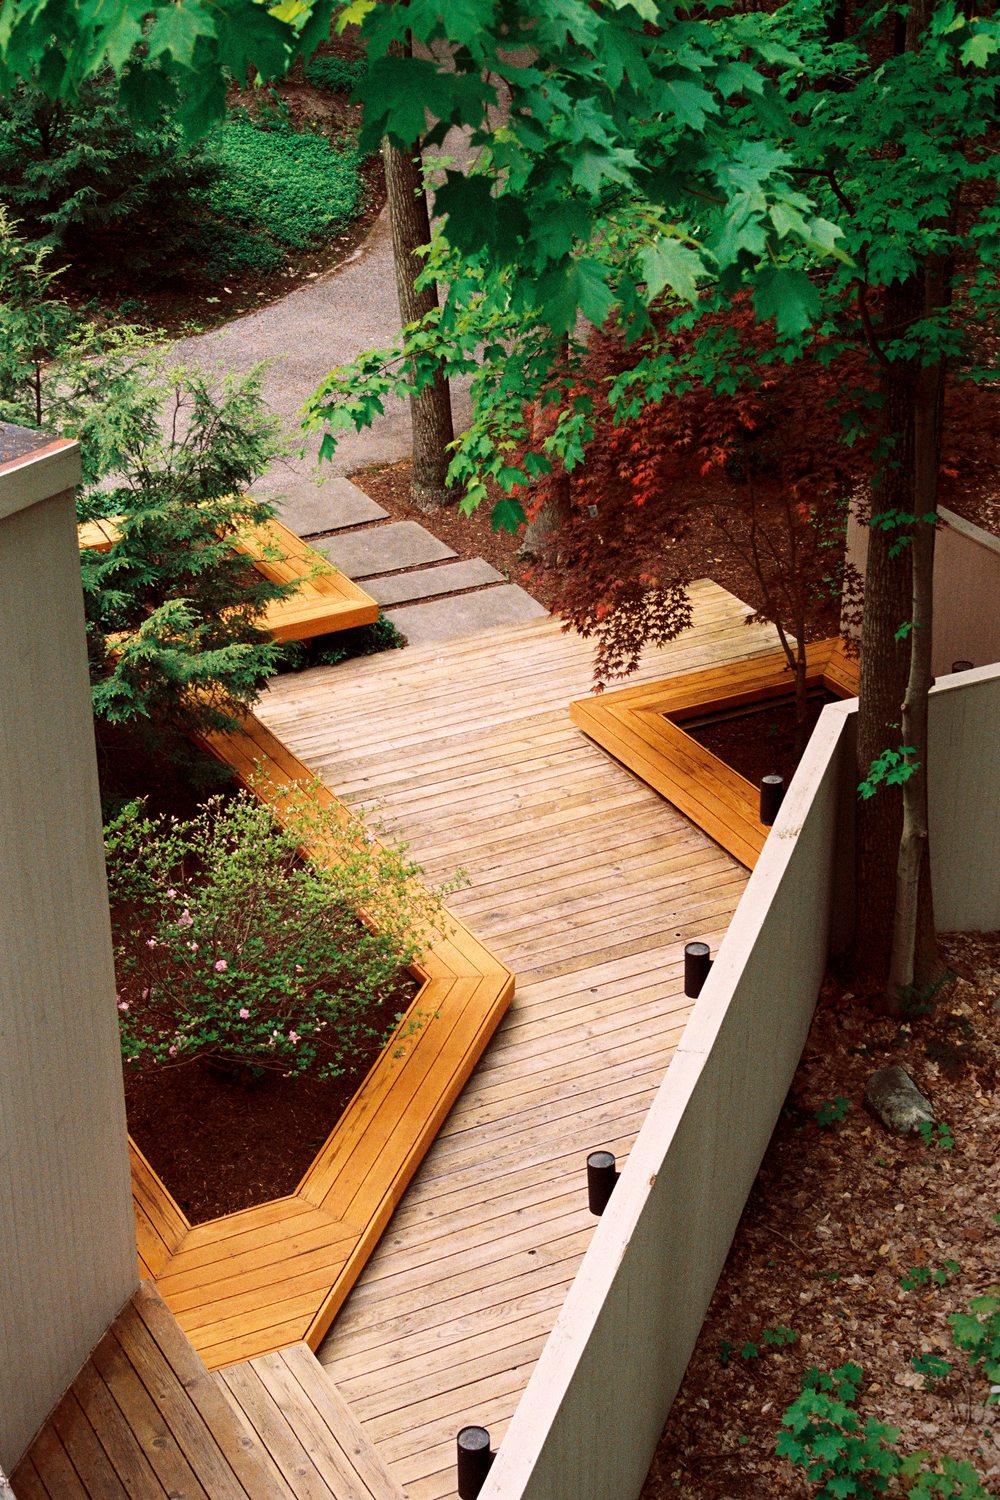 Contemporary Deck Design and Courtyard Landscape